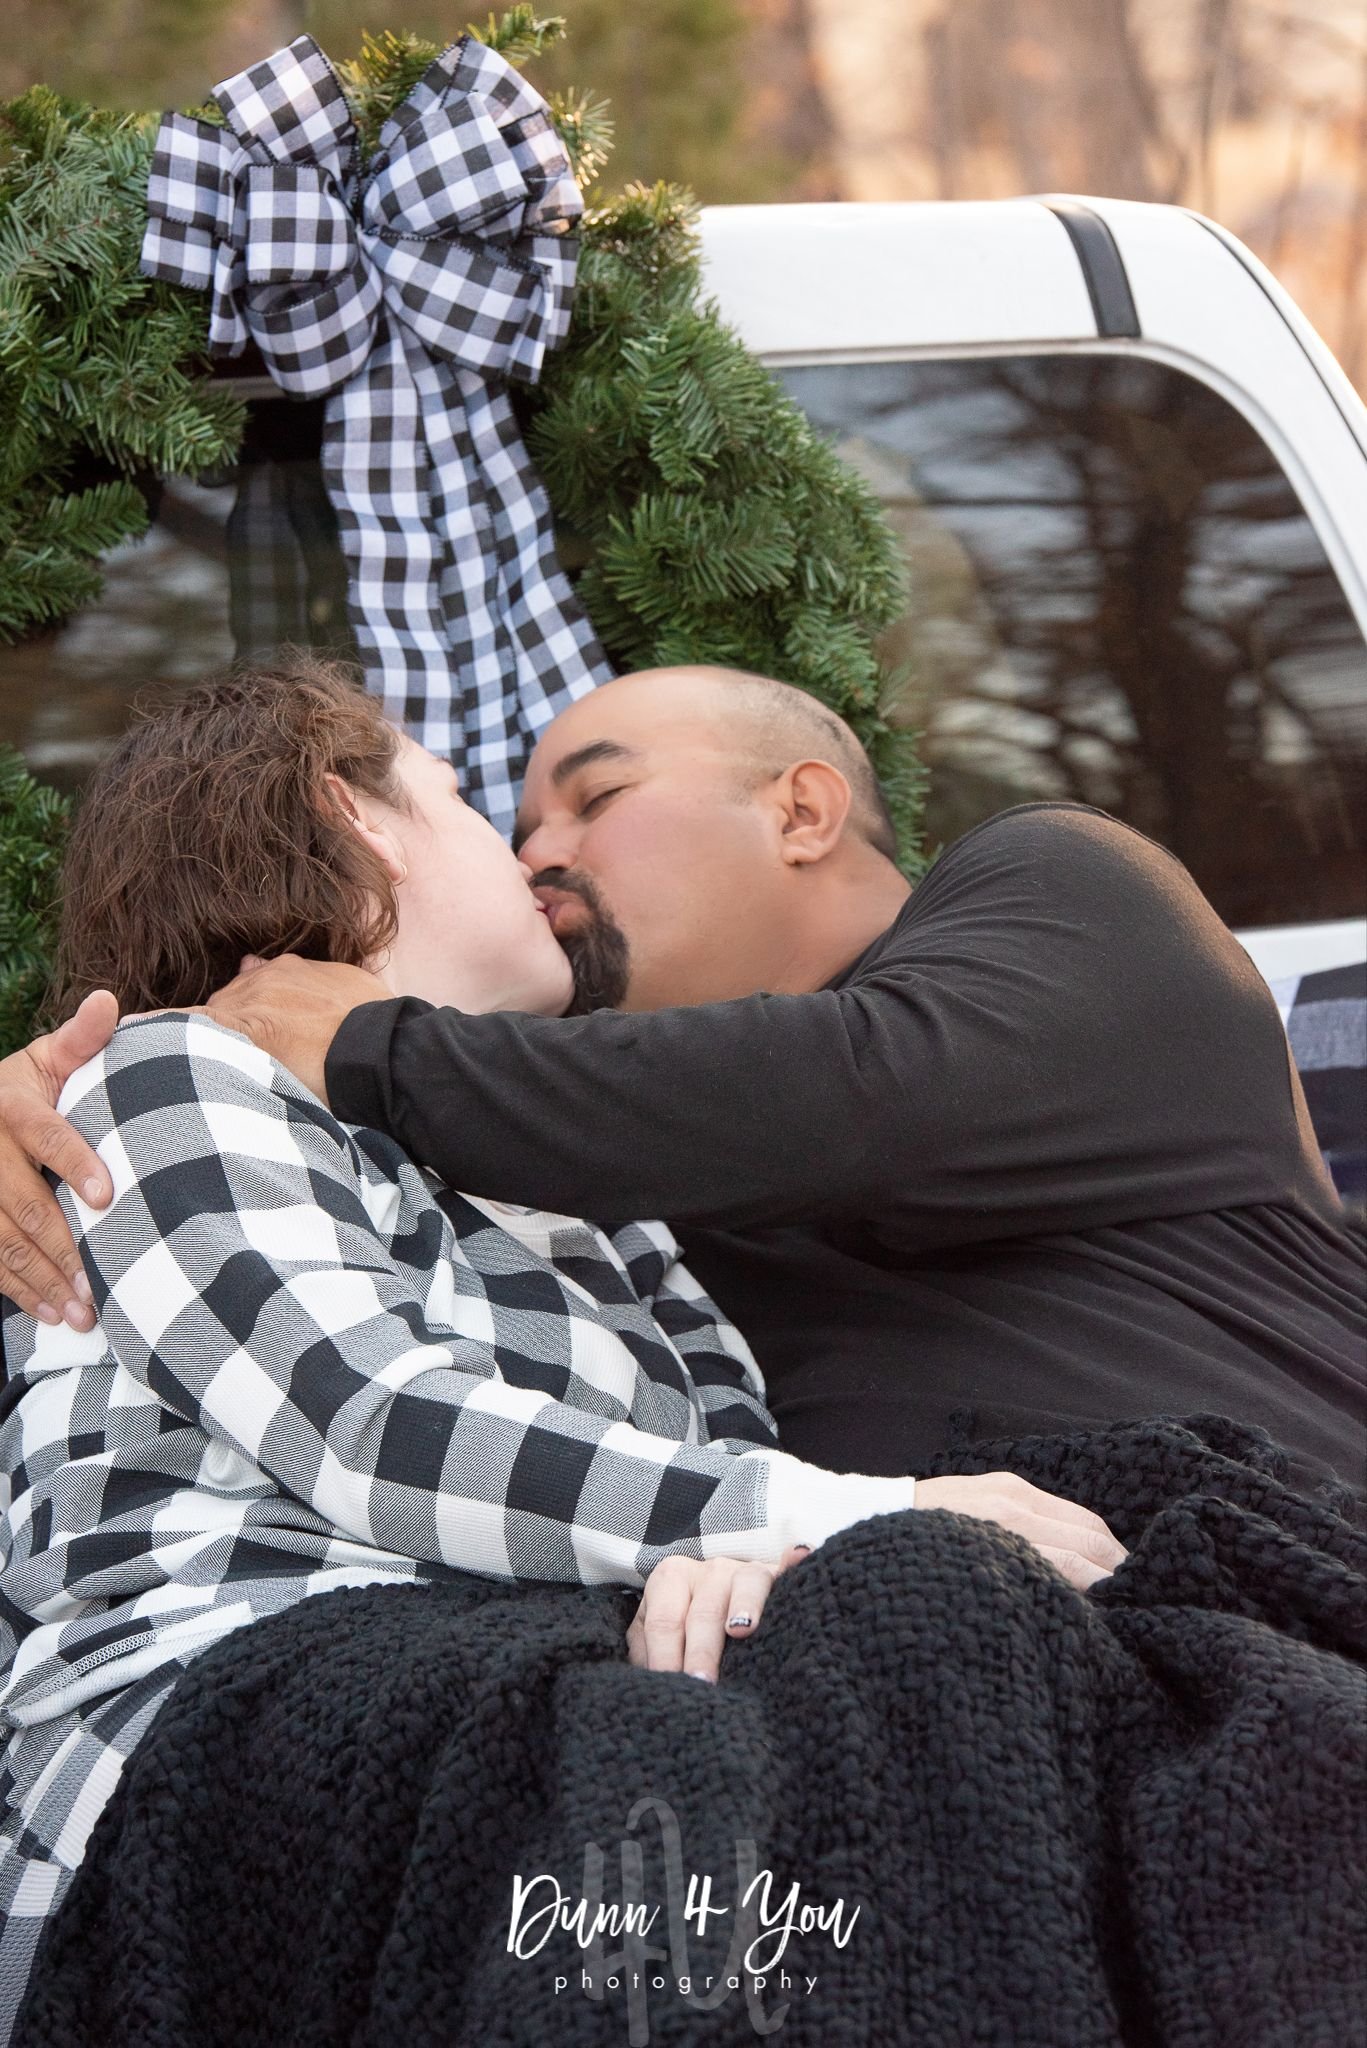 Couple shares a kiss for Christmas in buffalo plaid theme.